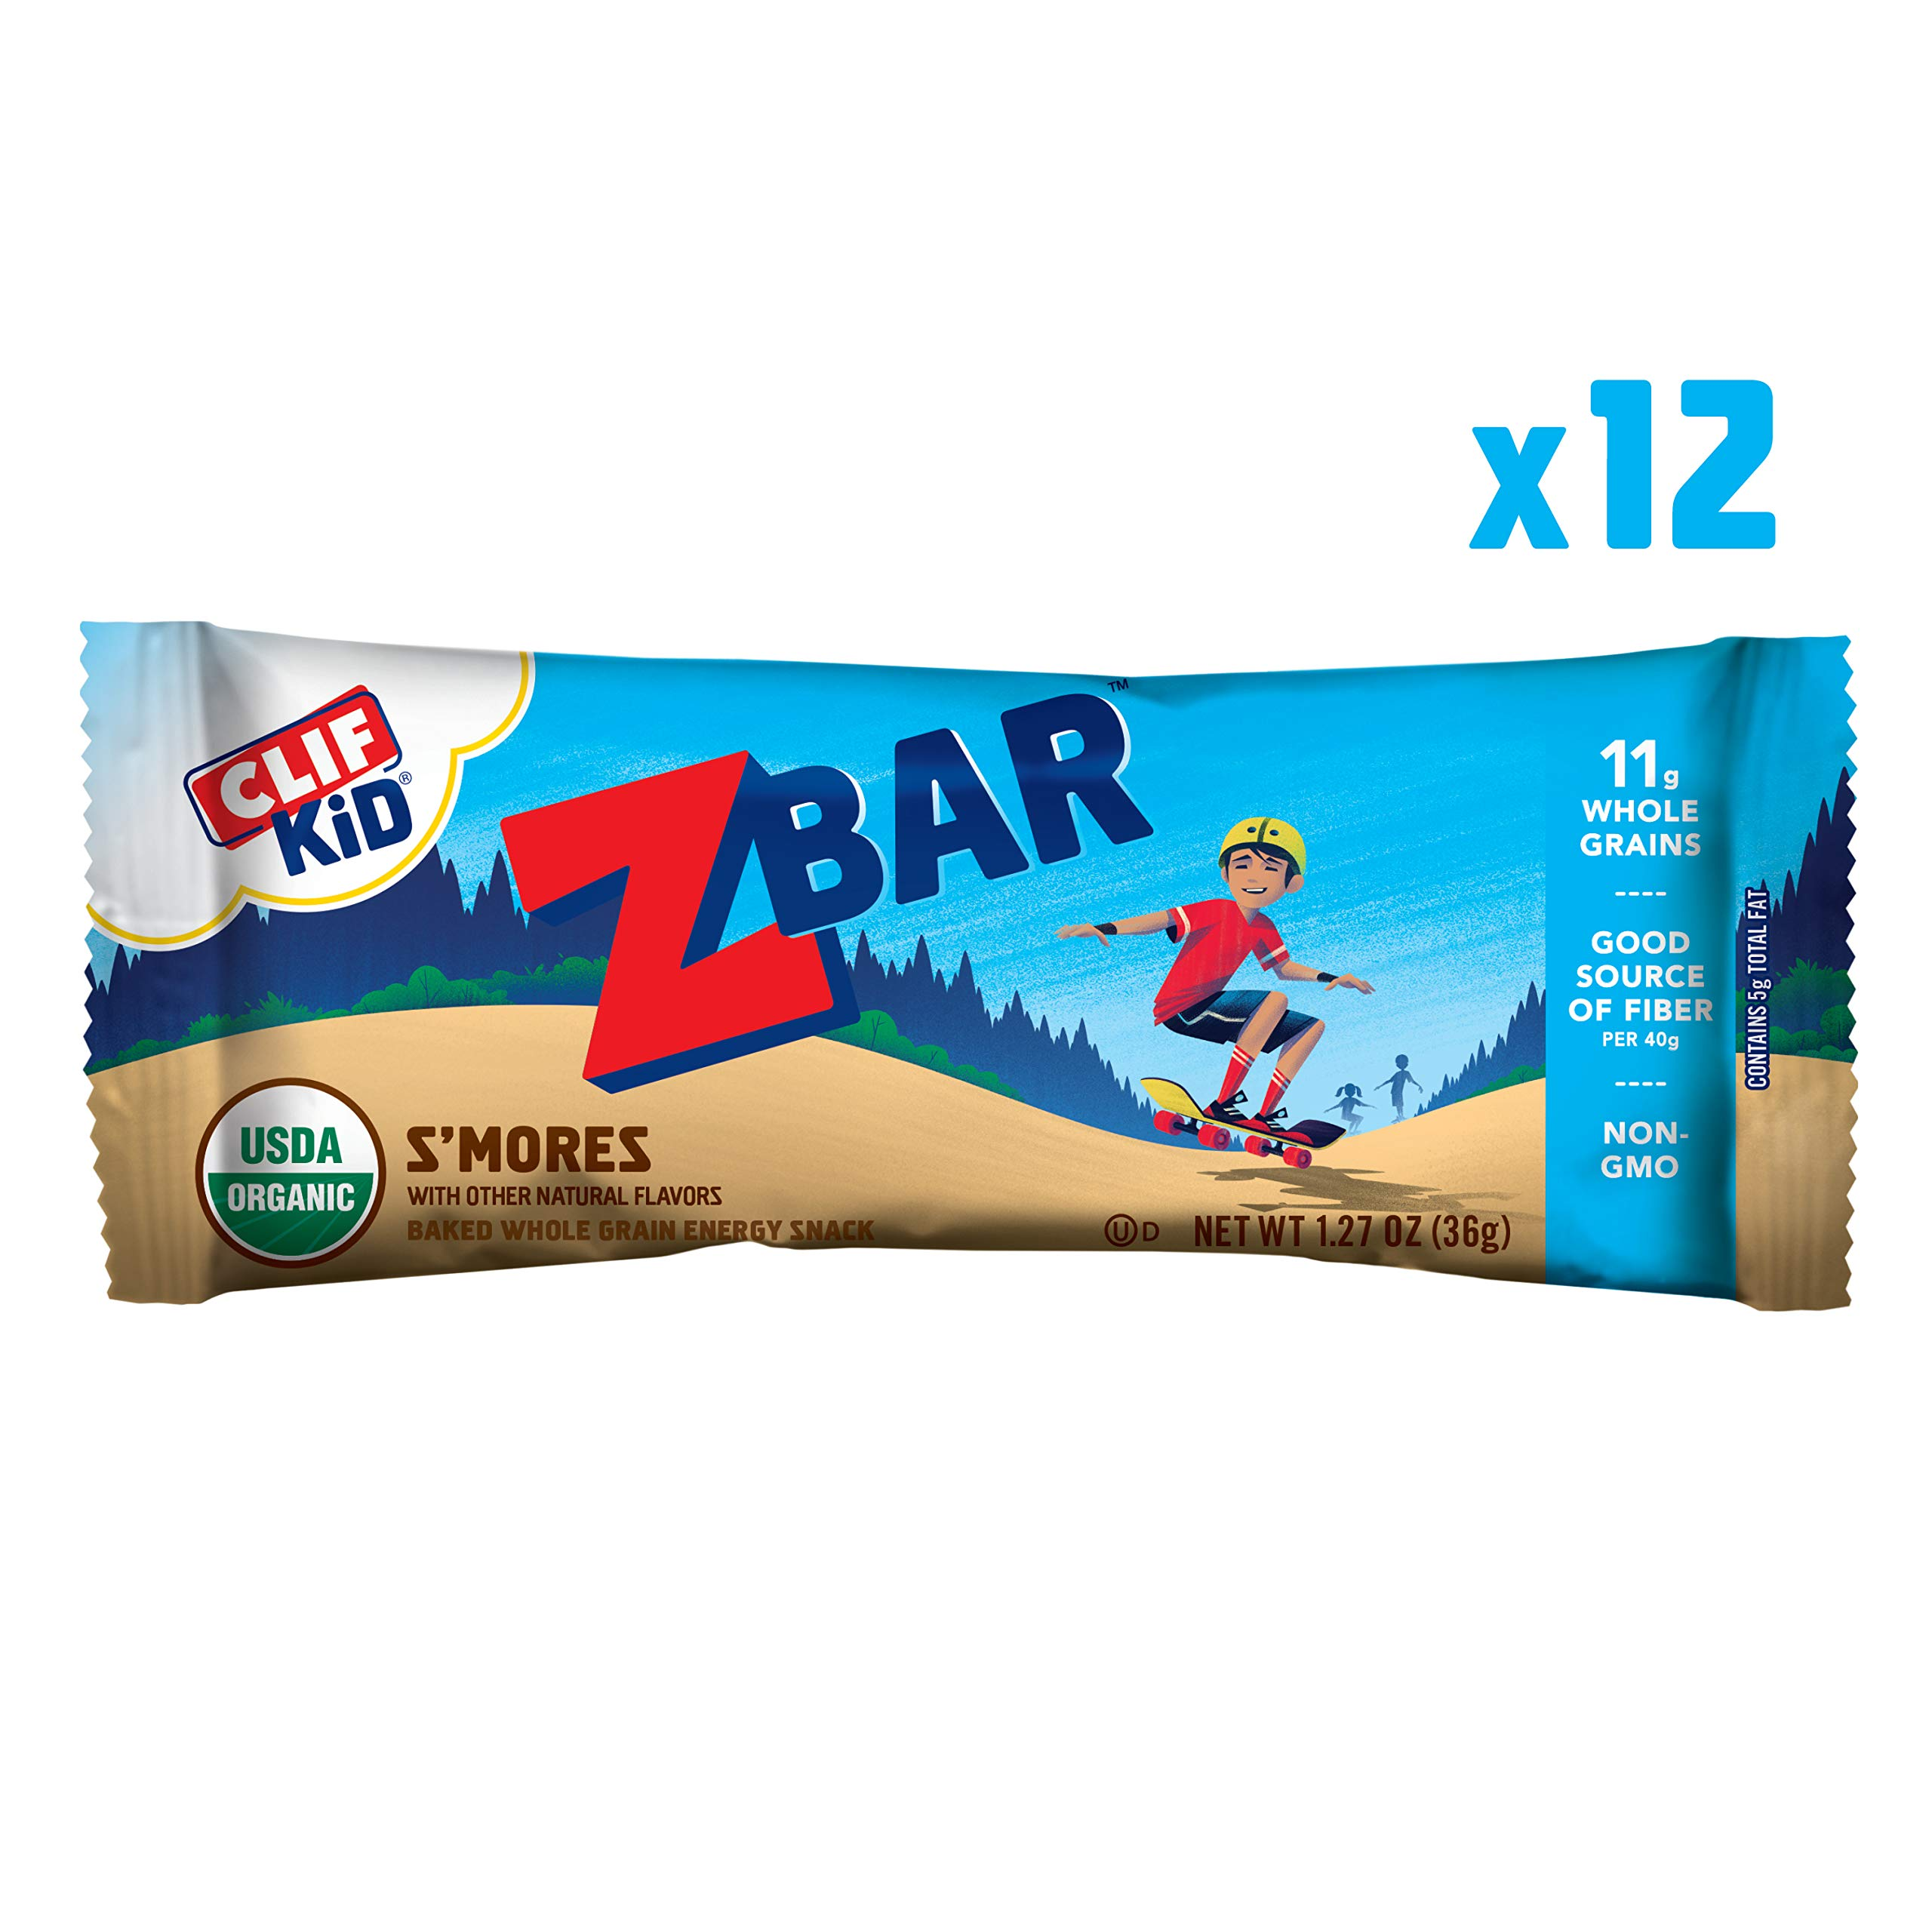 Clif Kid Z Bar Organic Energy Bar Smore's, 12 Count by Clif Bar